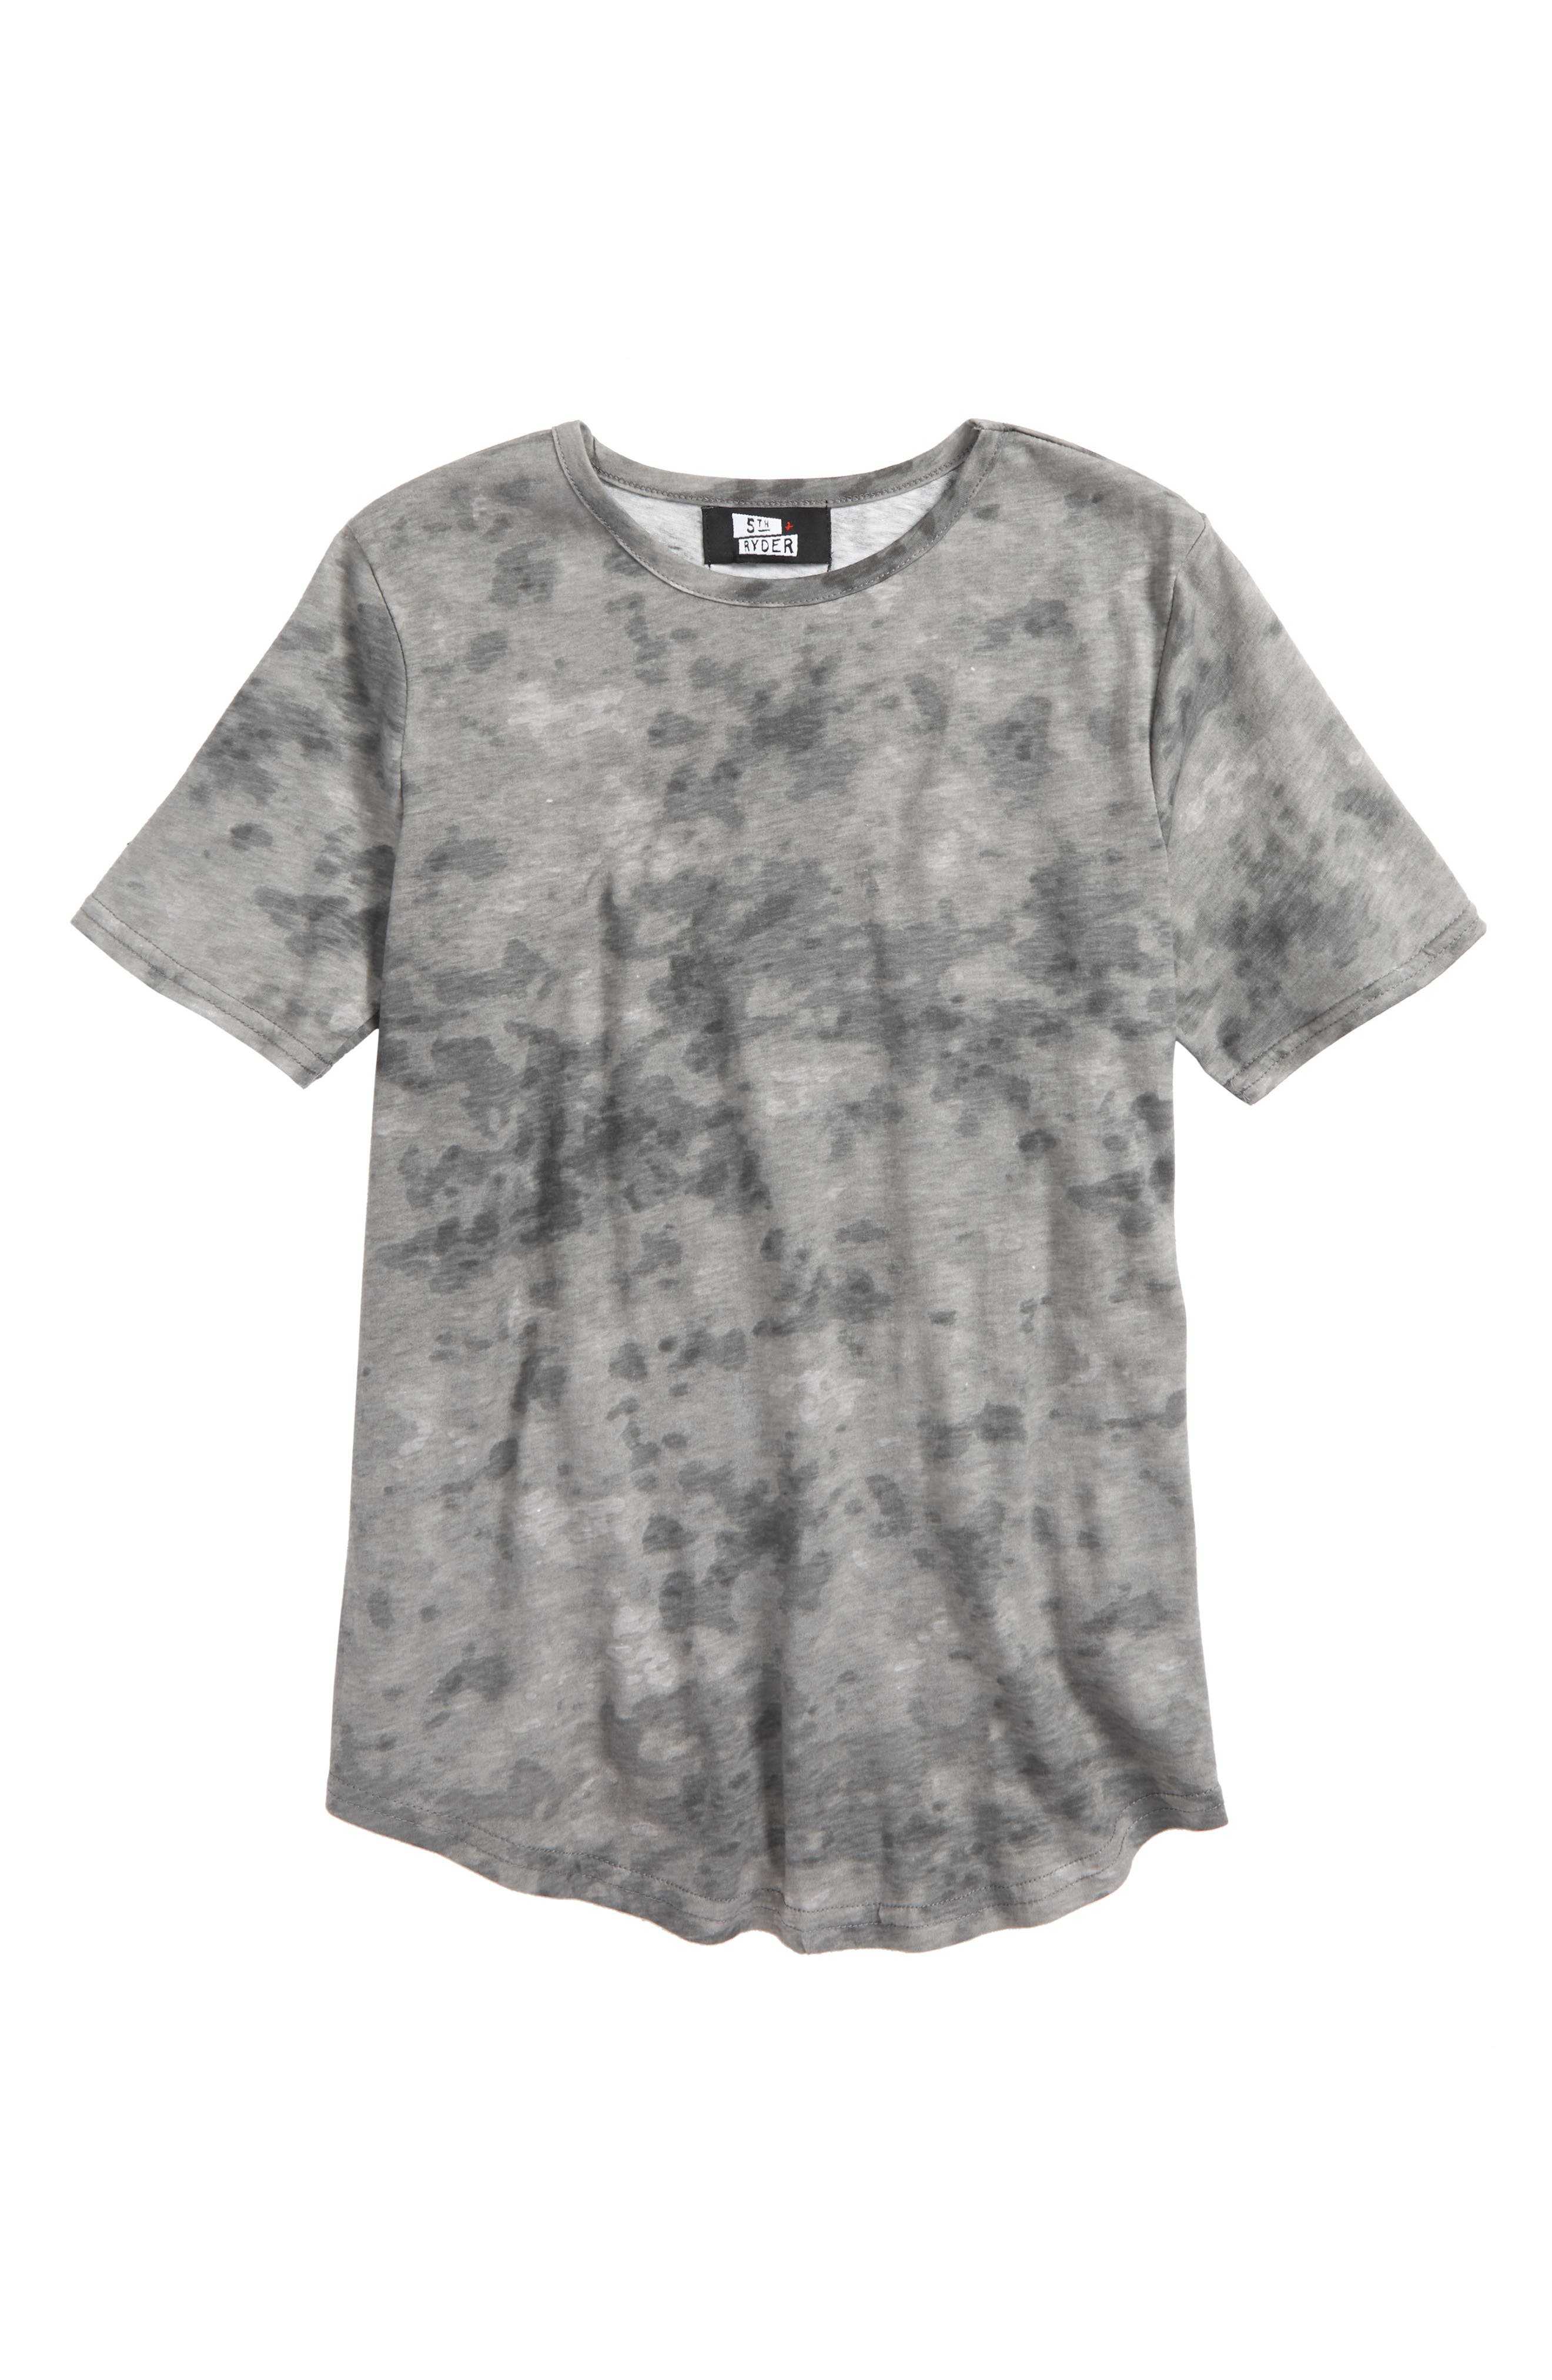 5TH AND RYDER,                             Tie Dye T-Shirt,                             Main thumbnail 1, color,                             060